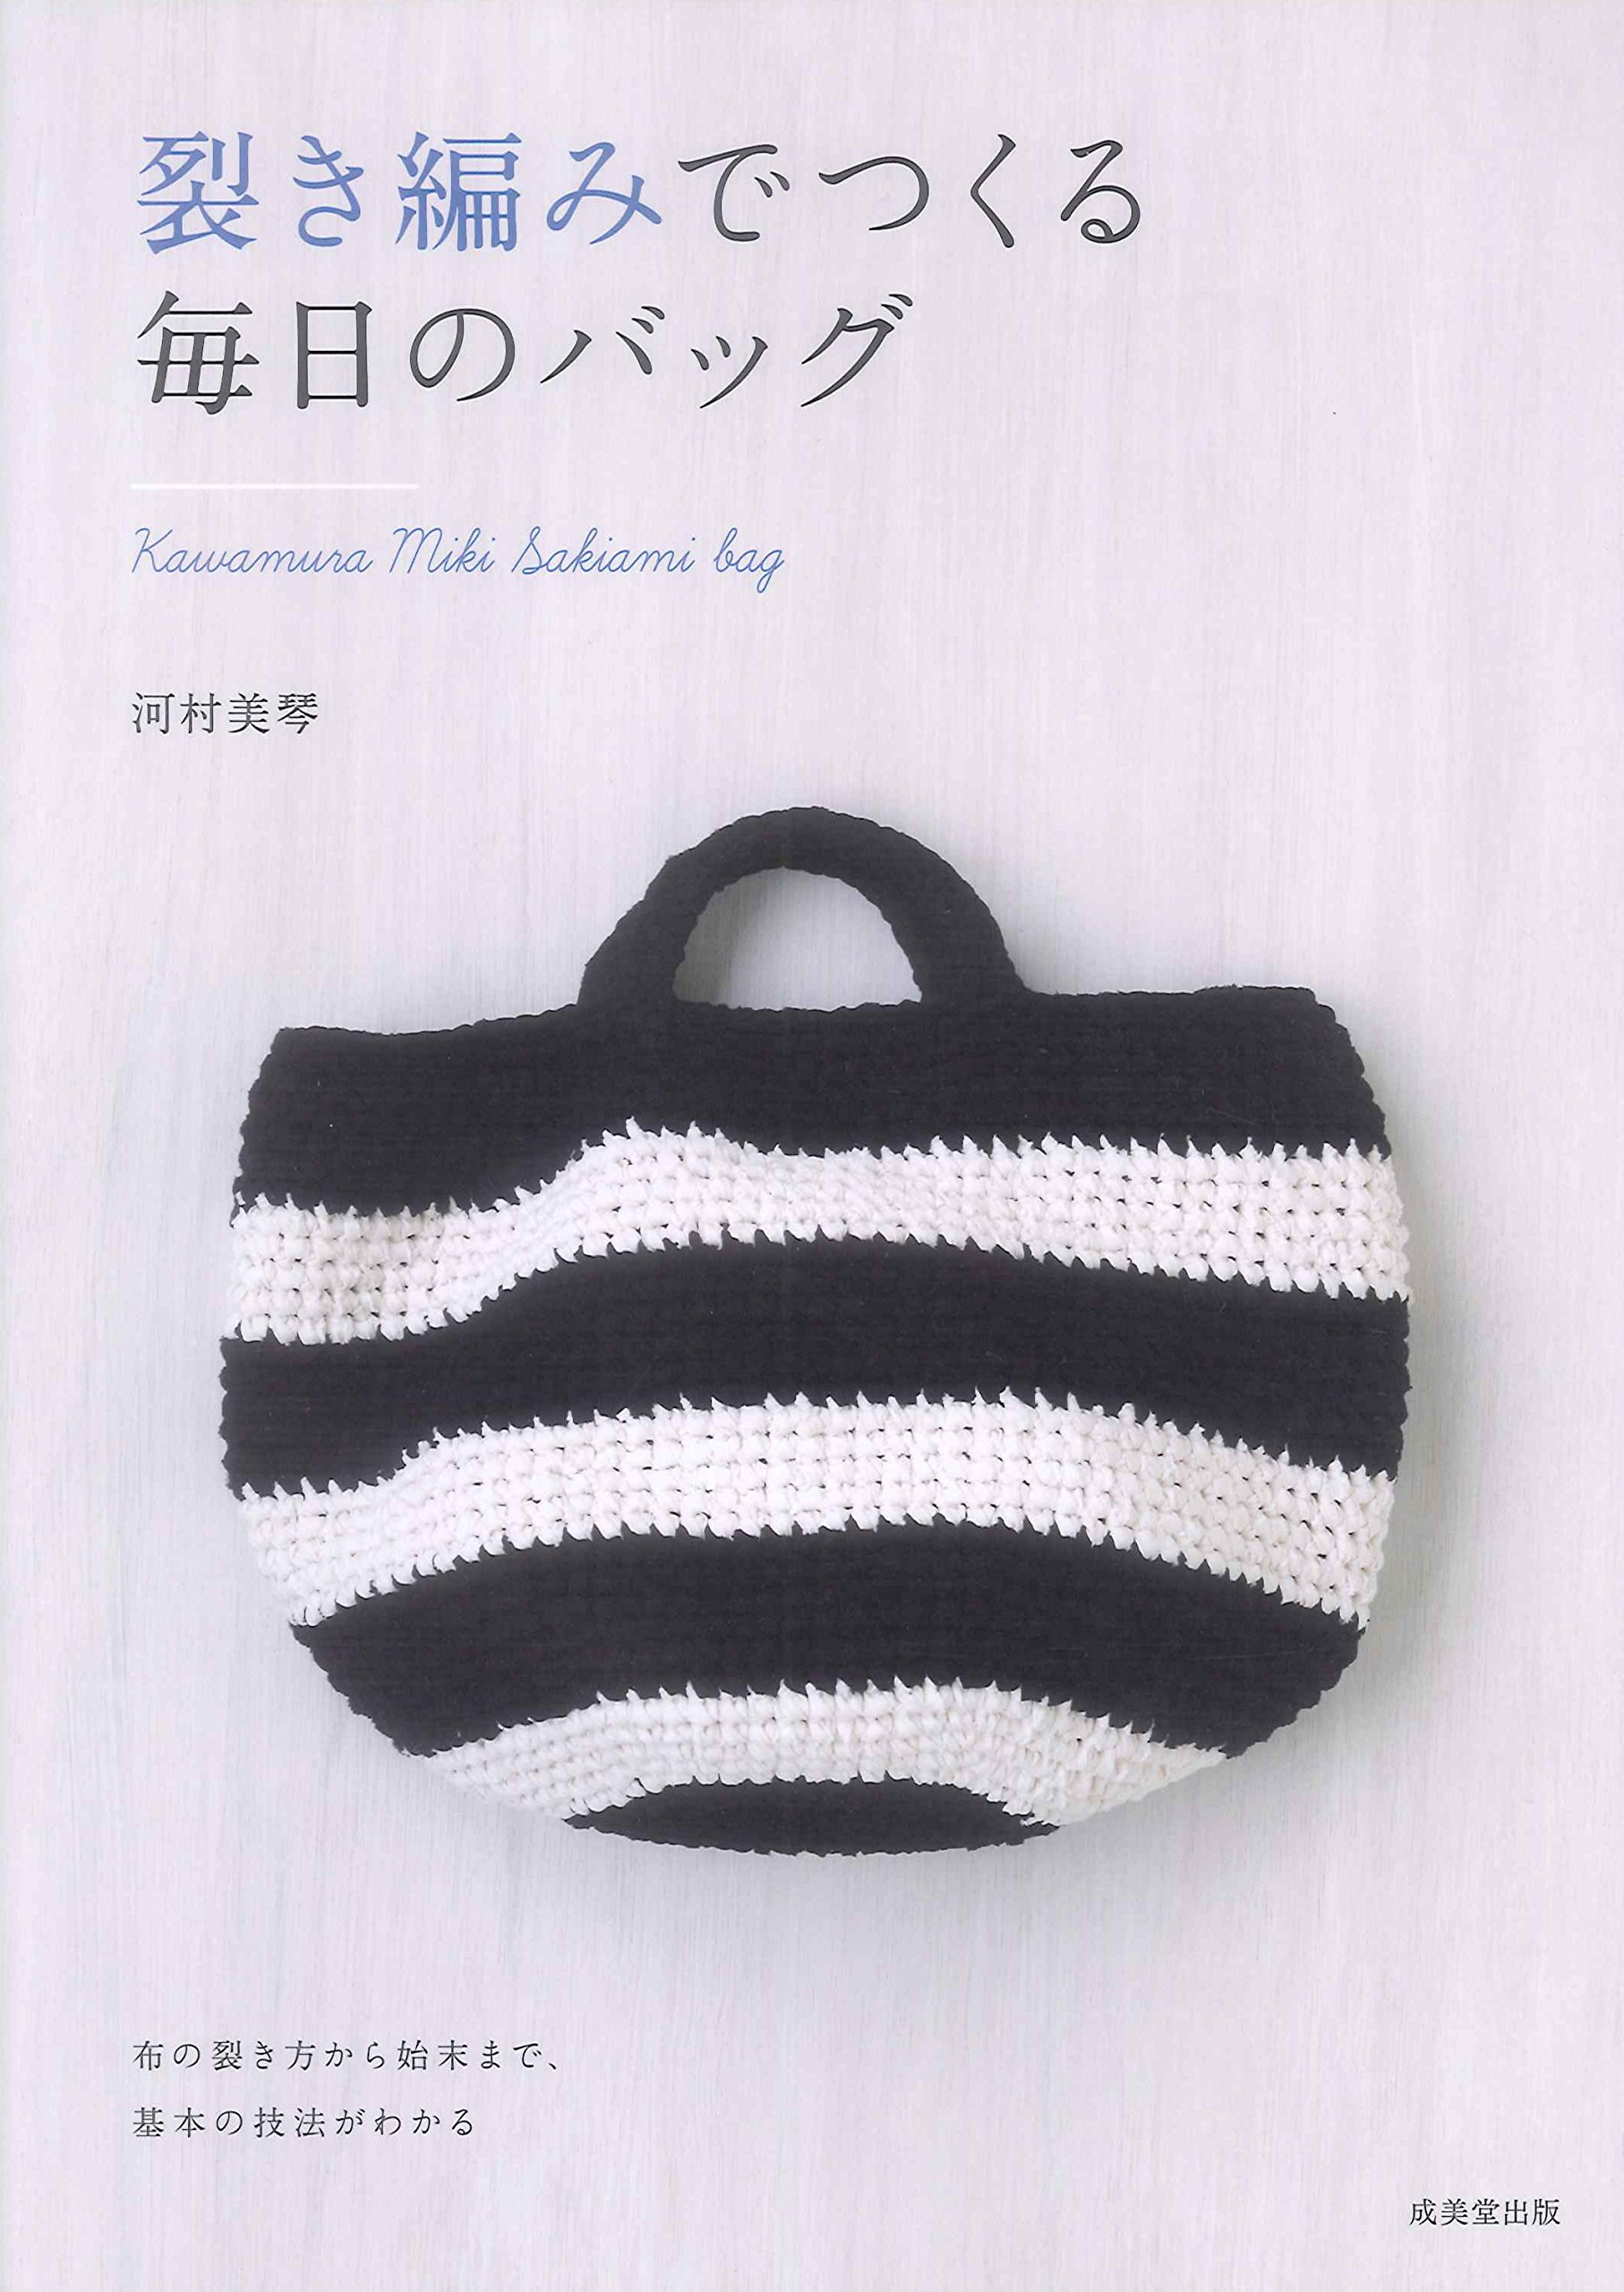 Daily bag made of tear knitting